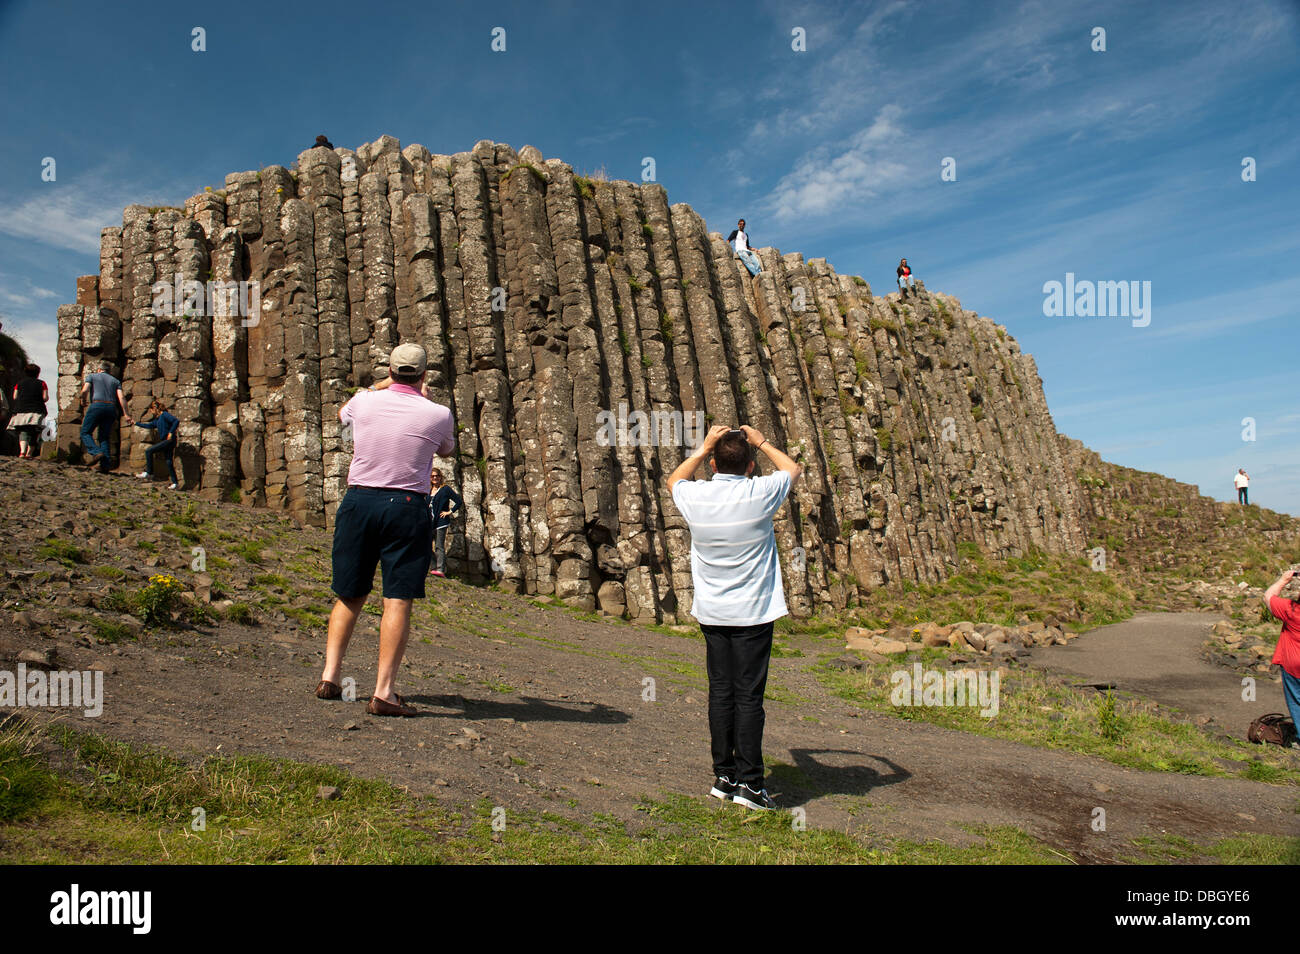 Visitors at the Giants Causeway, Northern Ireland. - Stock Image